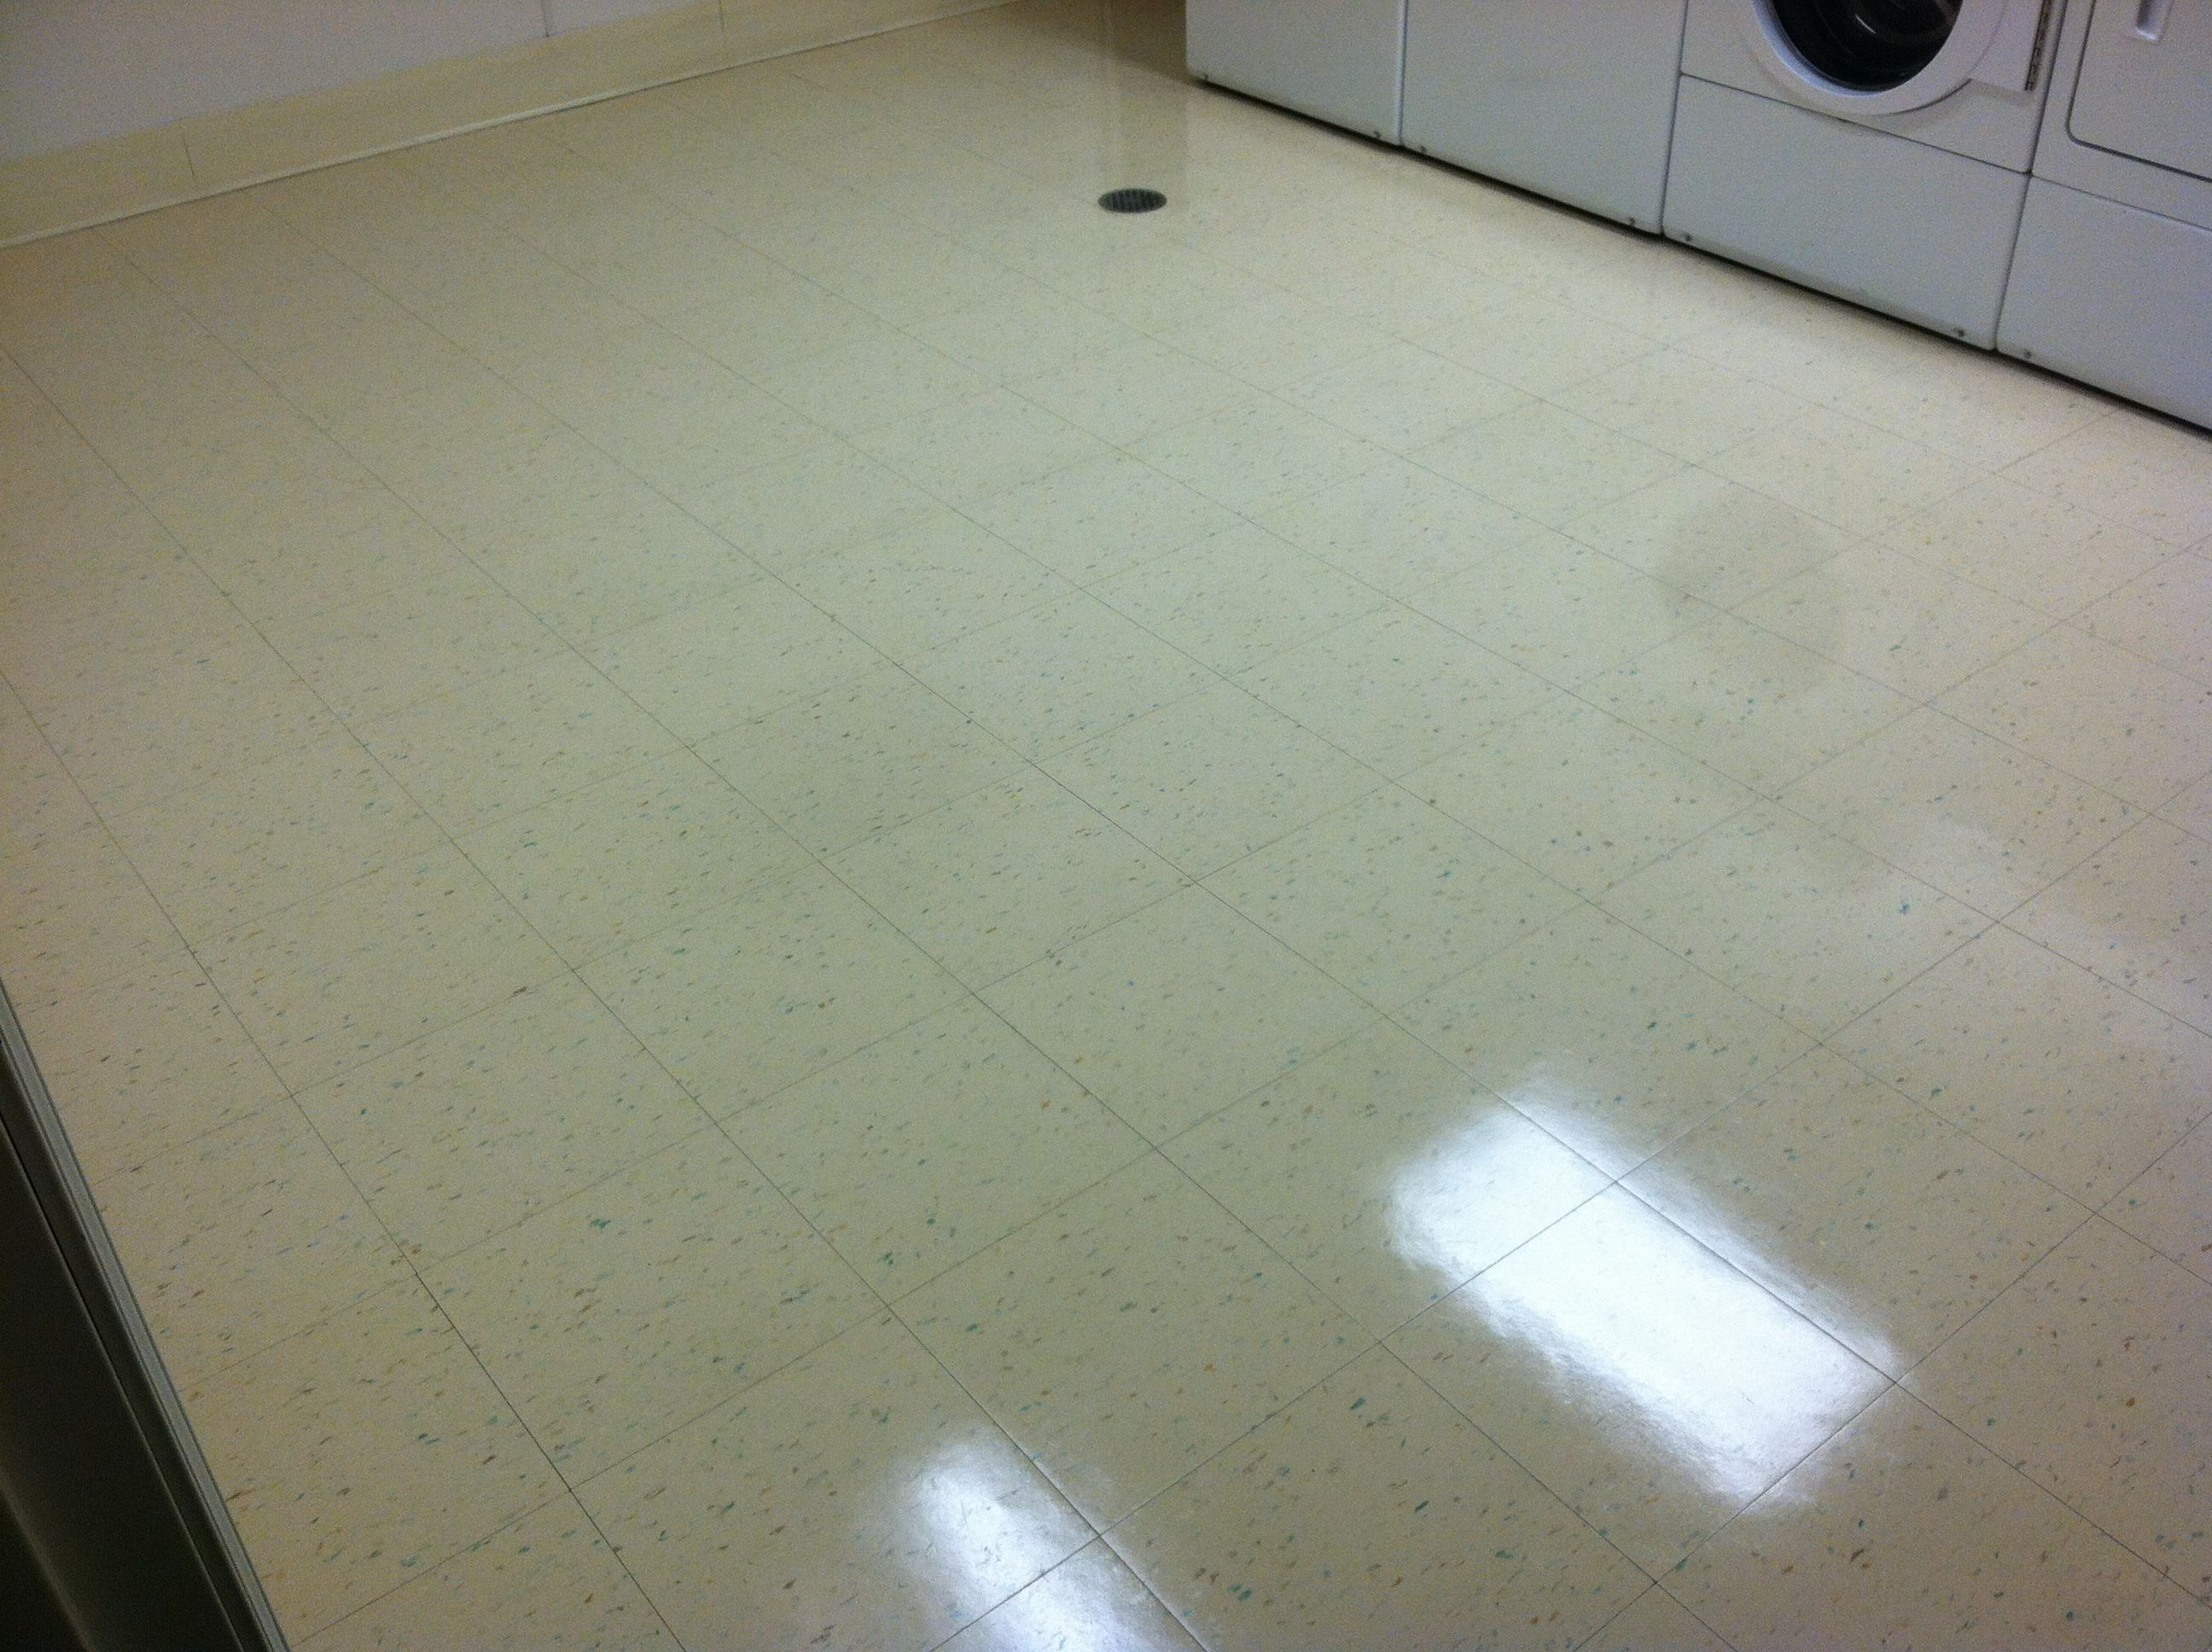 Hotel Laundry Room VCT Floor AFTER Cleaning by Renue